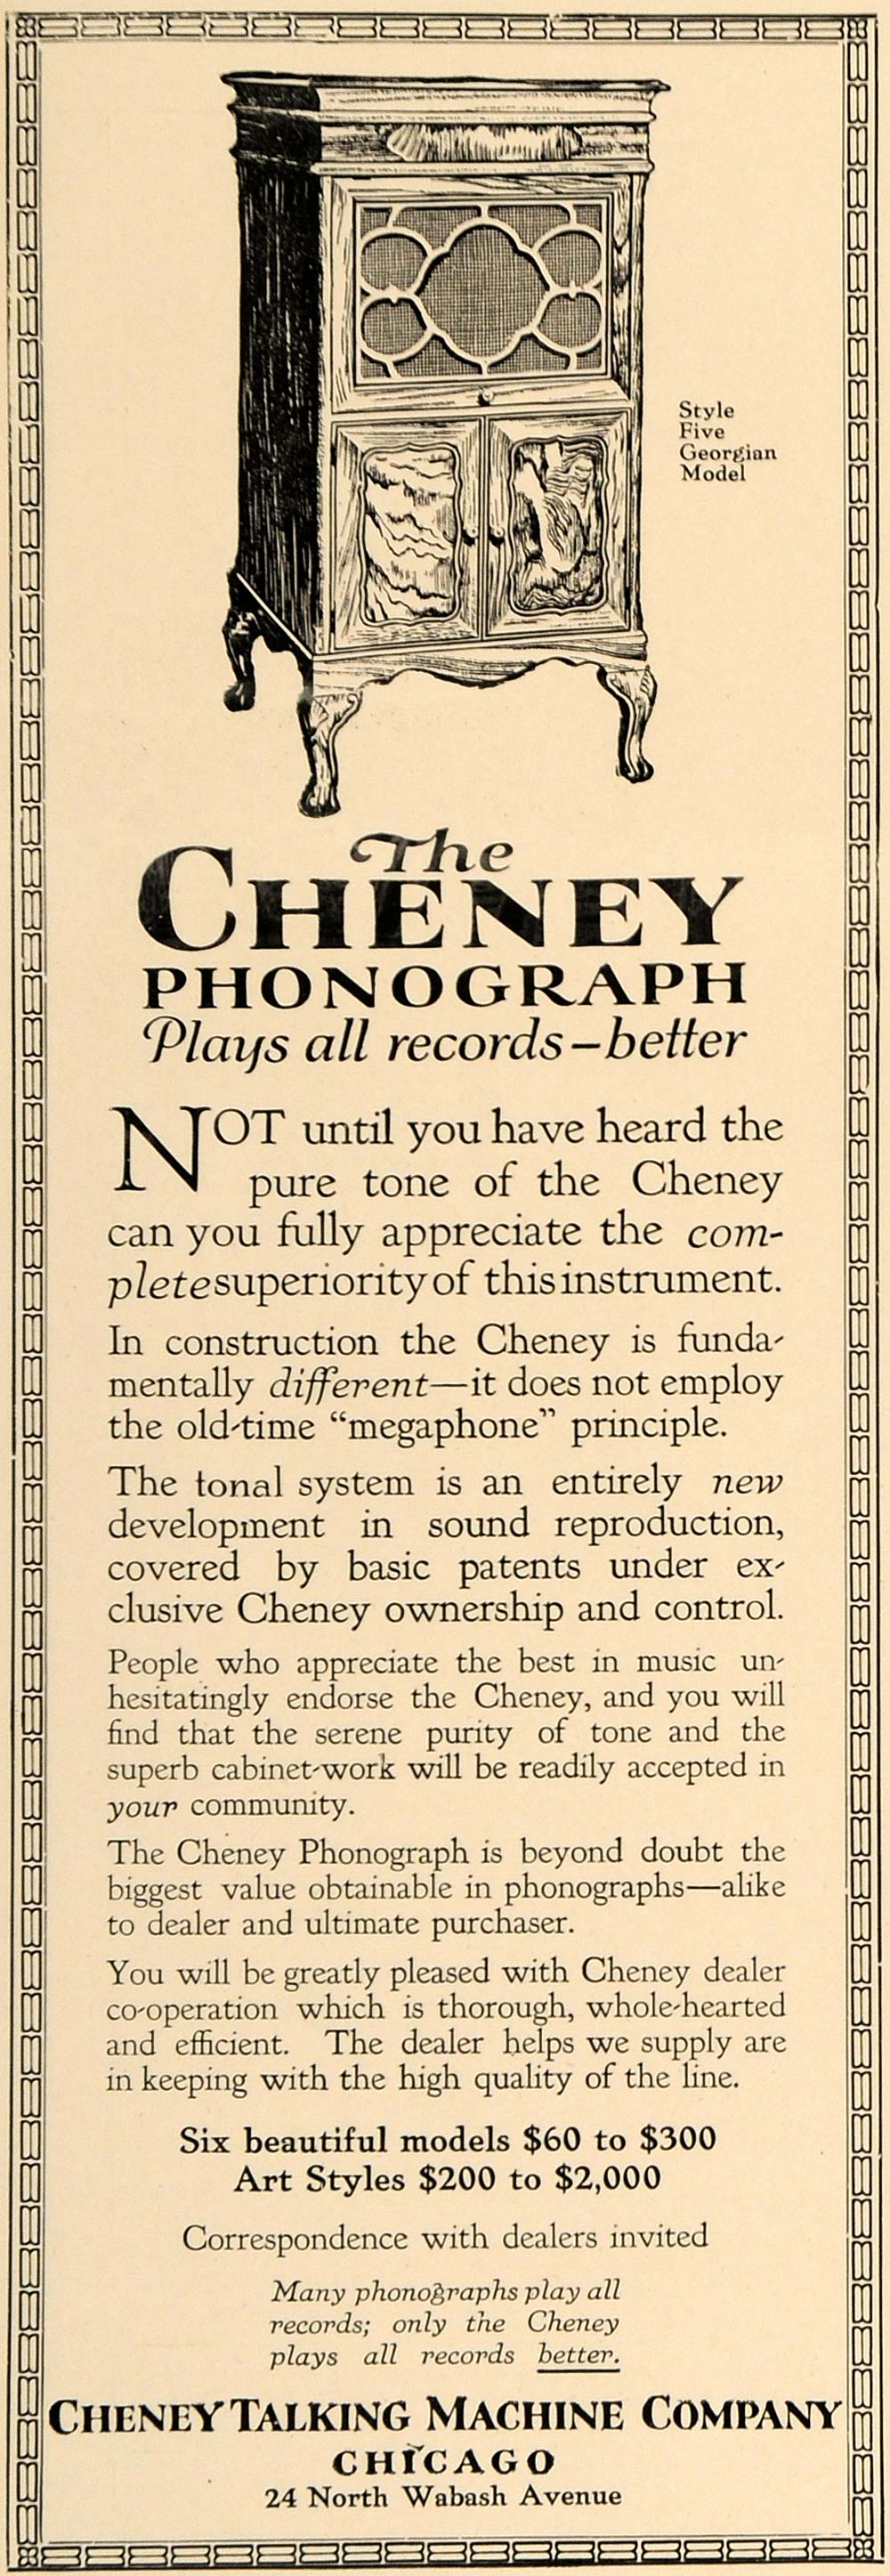 1918 Ad Cheney Phonograph Style 5 Georgian Model IL - ORIGINAL ADVERTISING GF2